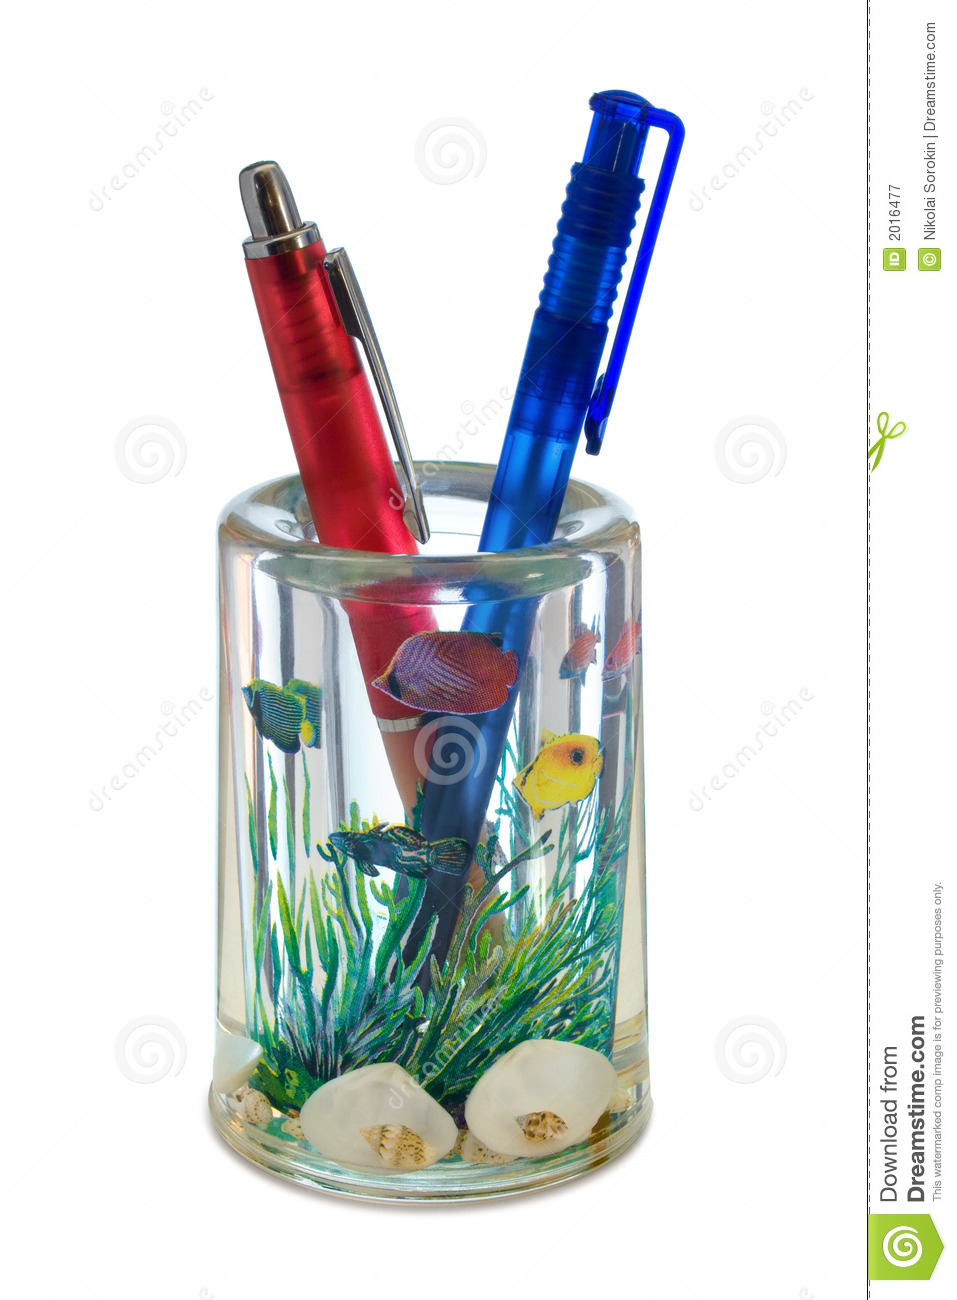 Two pens in container (like a aquarium)